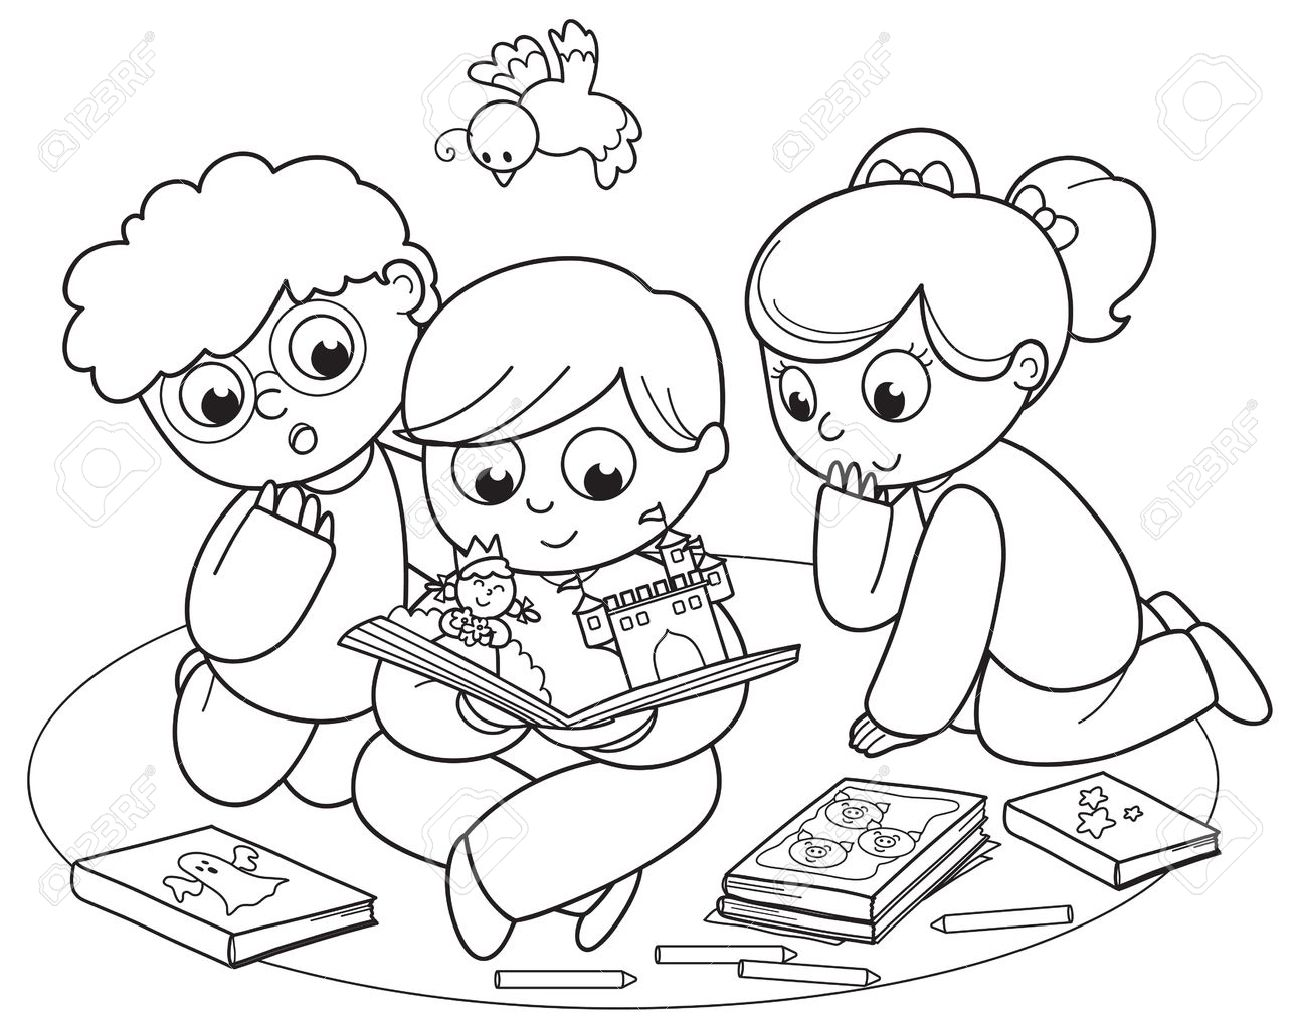 Coloring illustration of friends reading a pop-up book together Stock Vector - 15808979